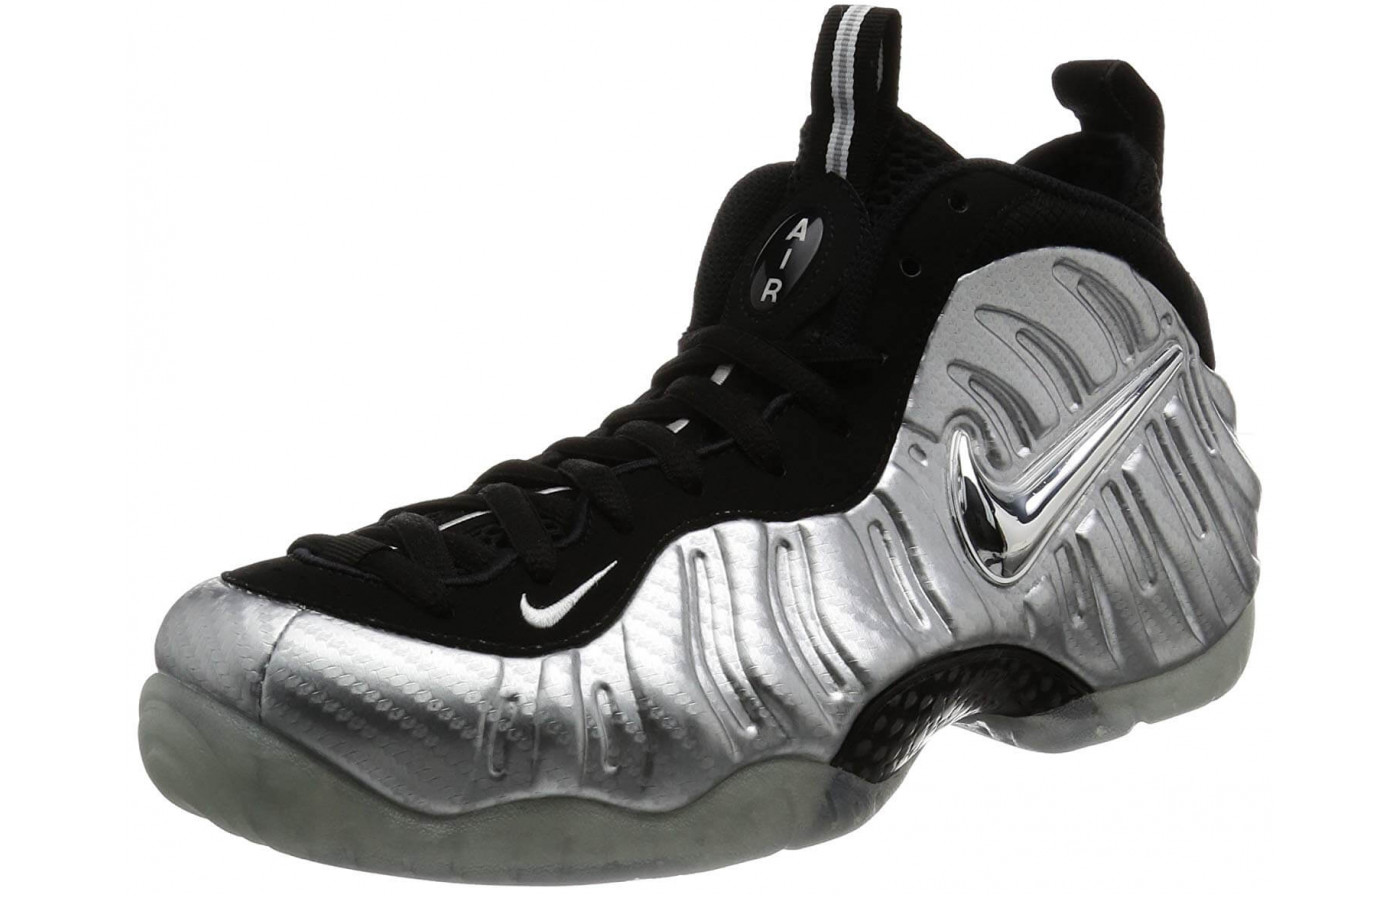 065cd7d52df Nike Air Foamposite Pro - To Buy or Not in May 2019